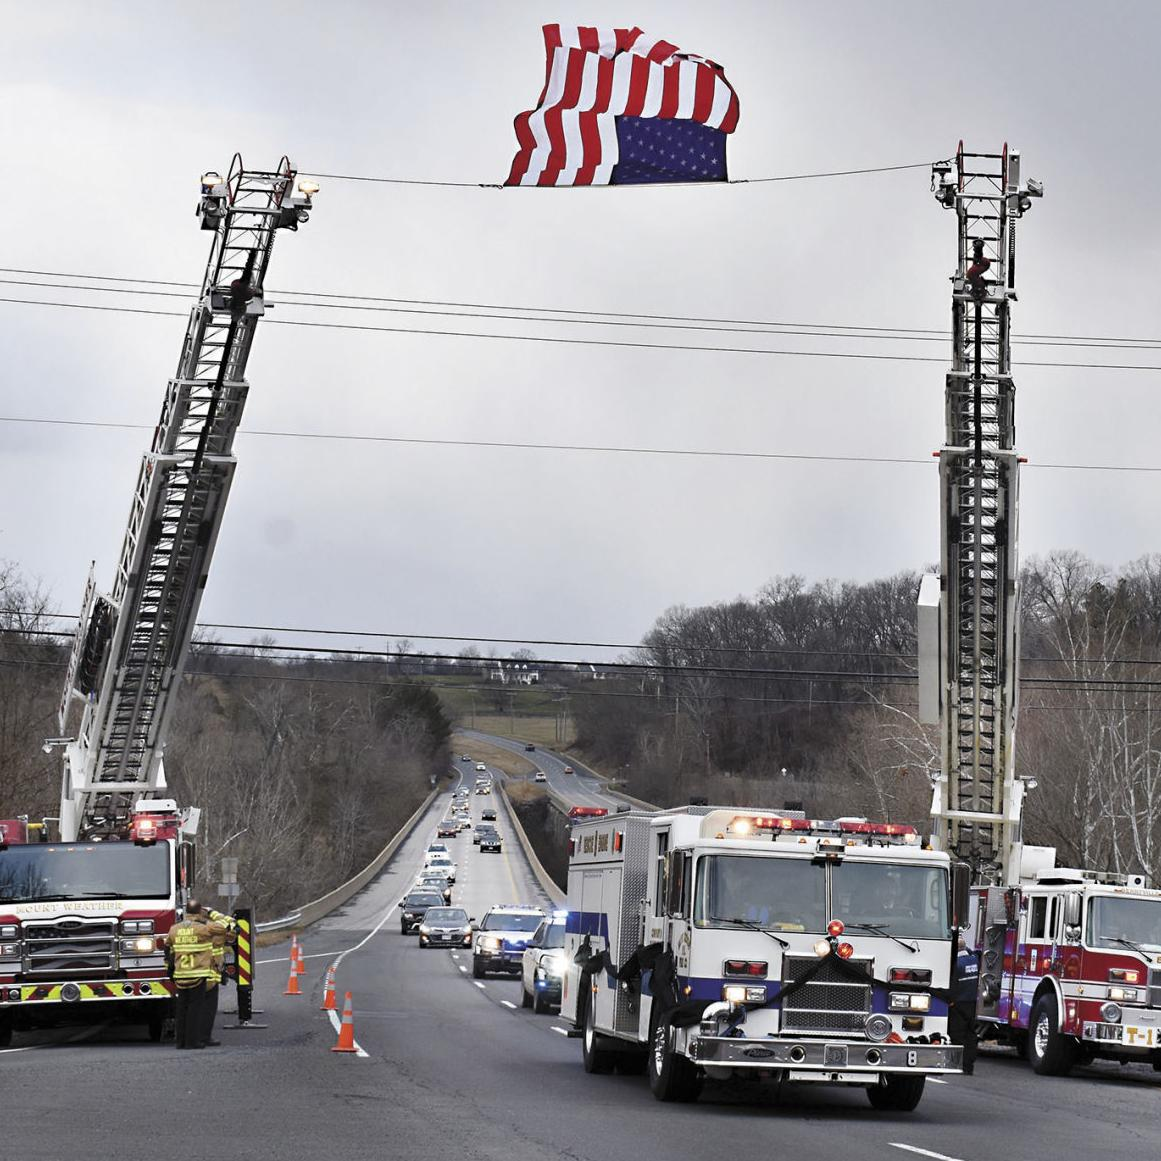 Firefighters memorialize one of their own